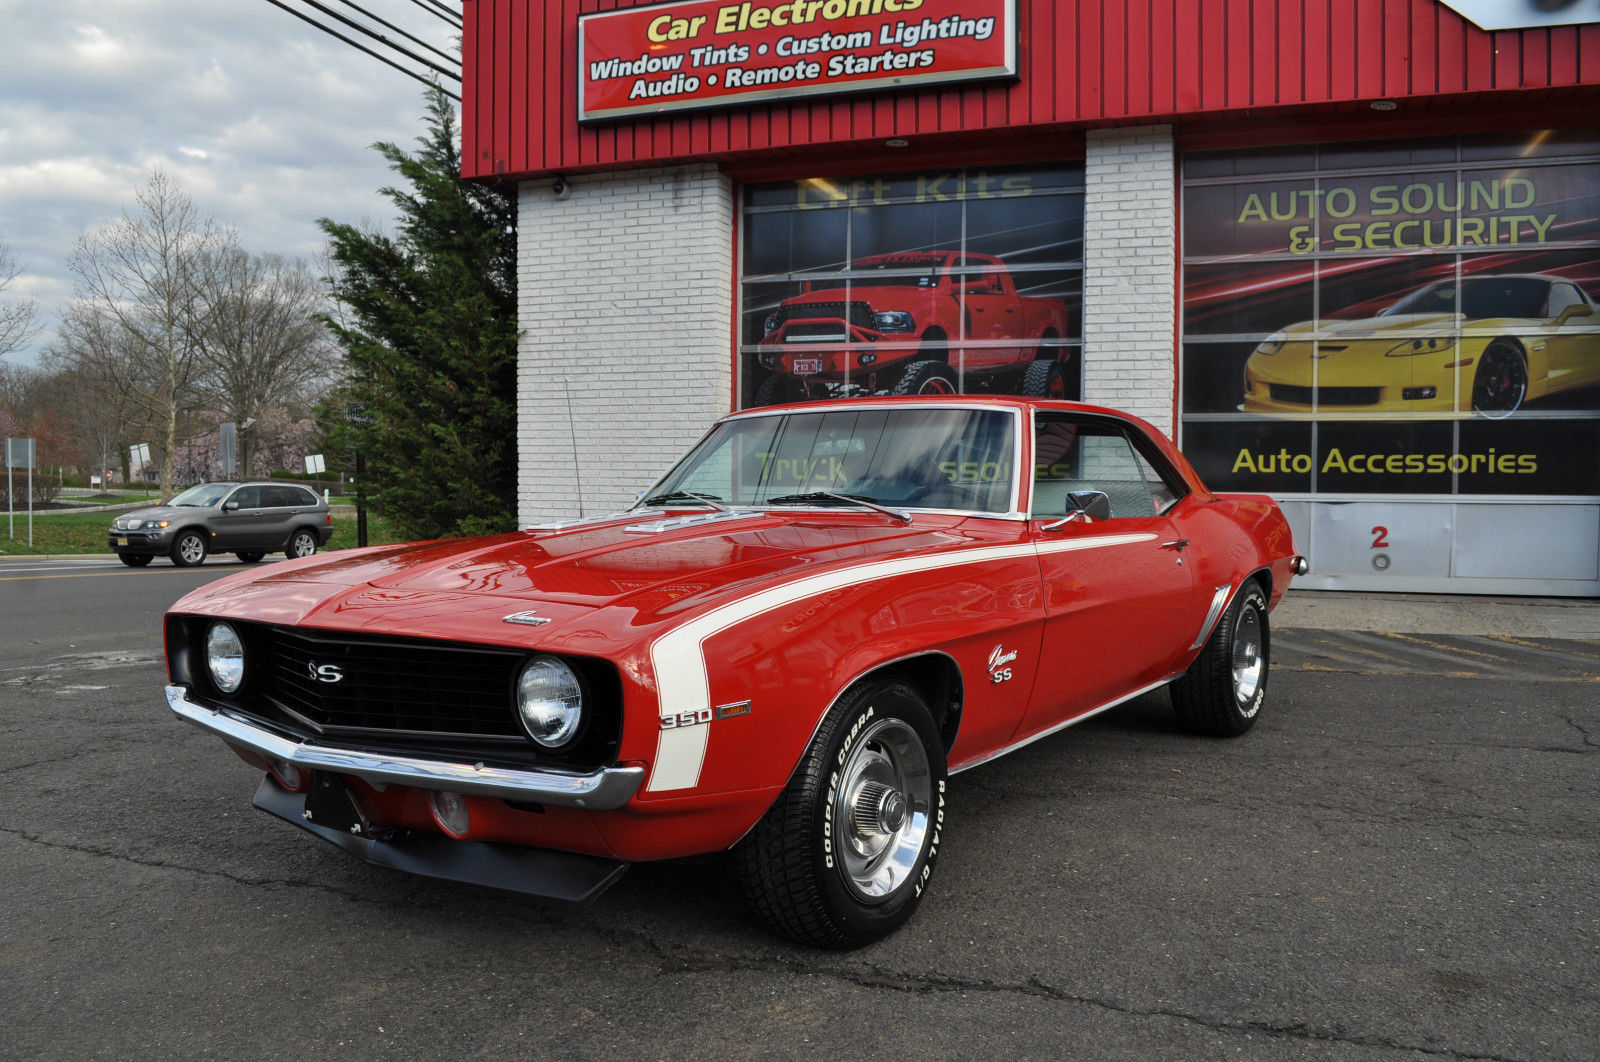 1969 Chevrolet Camaro Ss 350 4 Speed For Sale